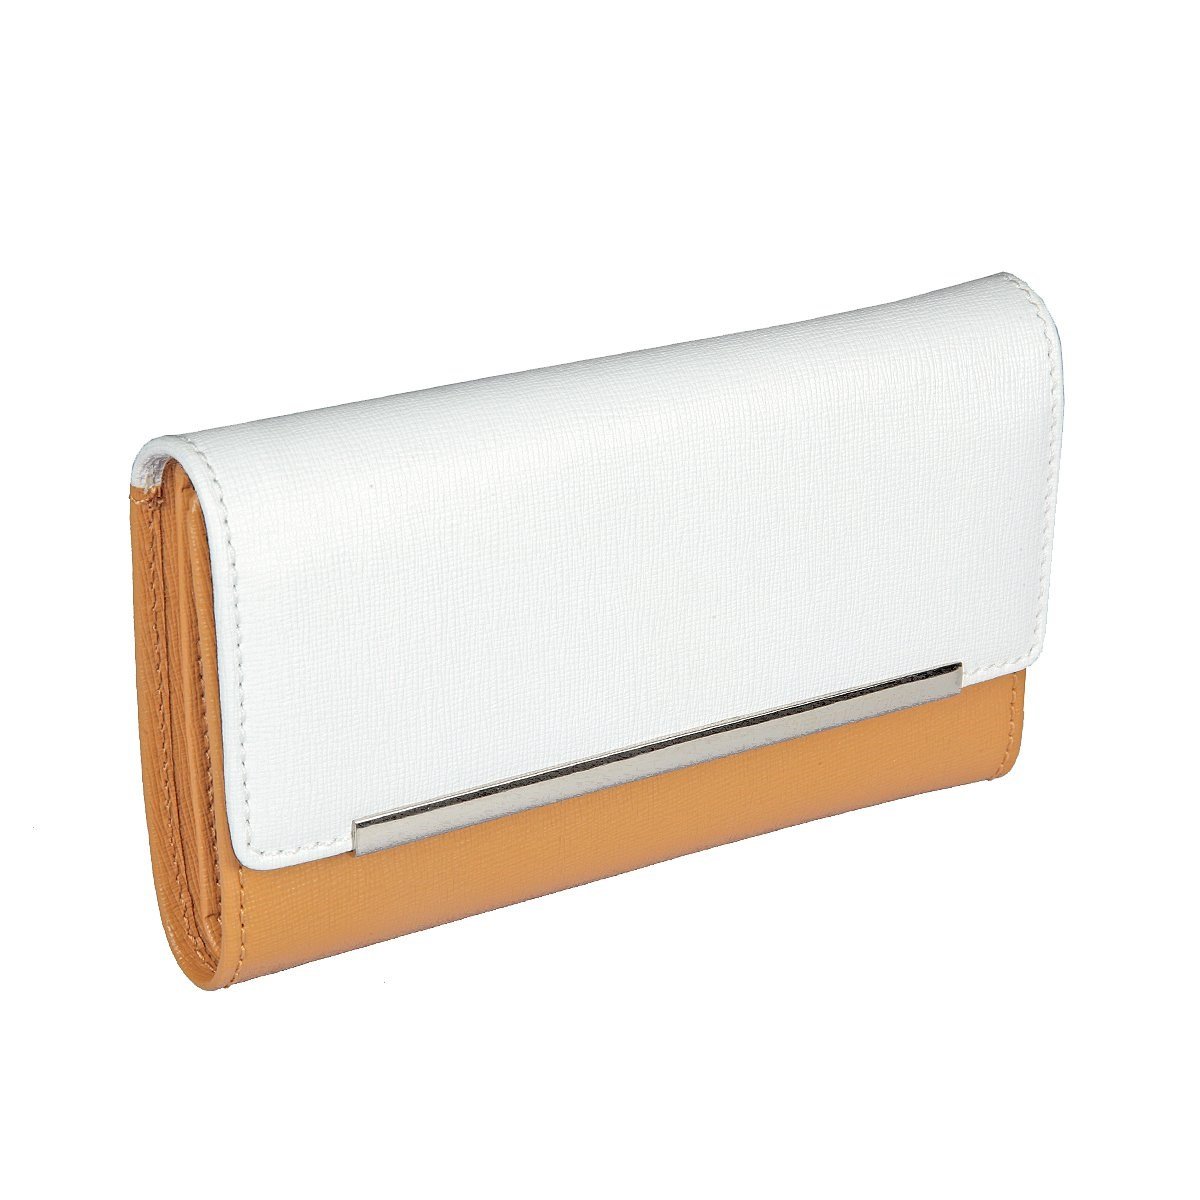 Coin Purse Gianni Conti 498733 Tan-white simline vintage genuine crazy horse cow leather men men s long hasp wallet wallets purse zipper coin pocket holder with chain